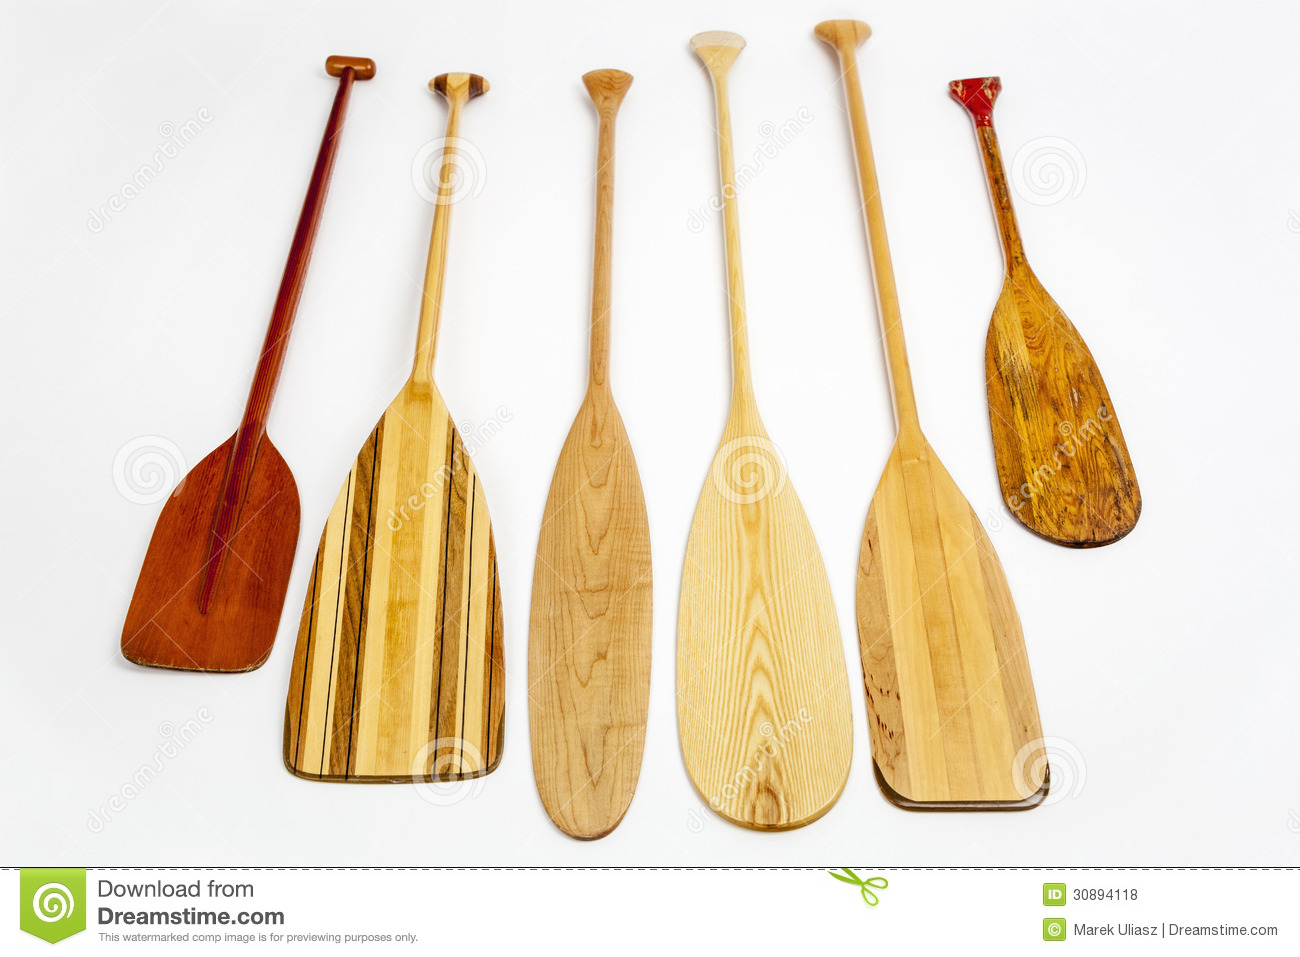 Wooden canoe paddles of different shapes and sizes including a classic ...